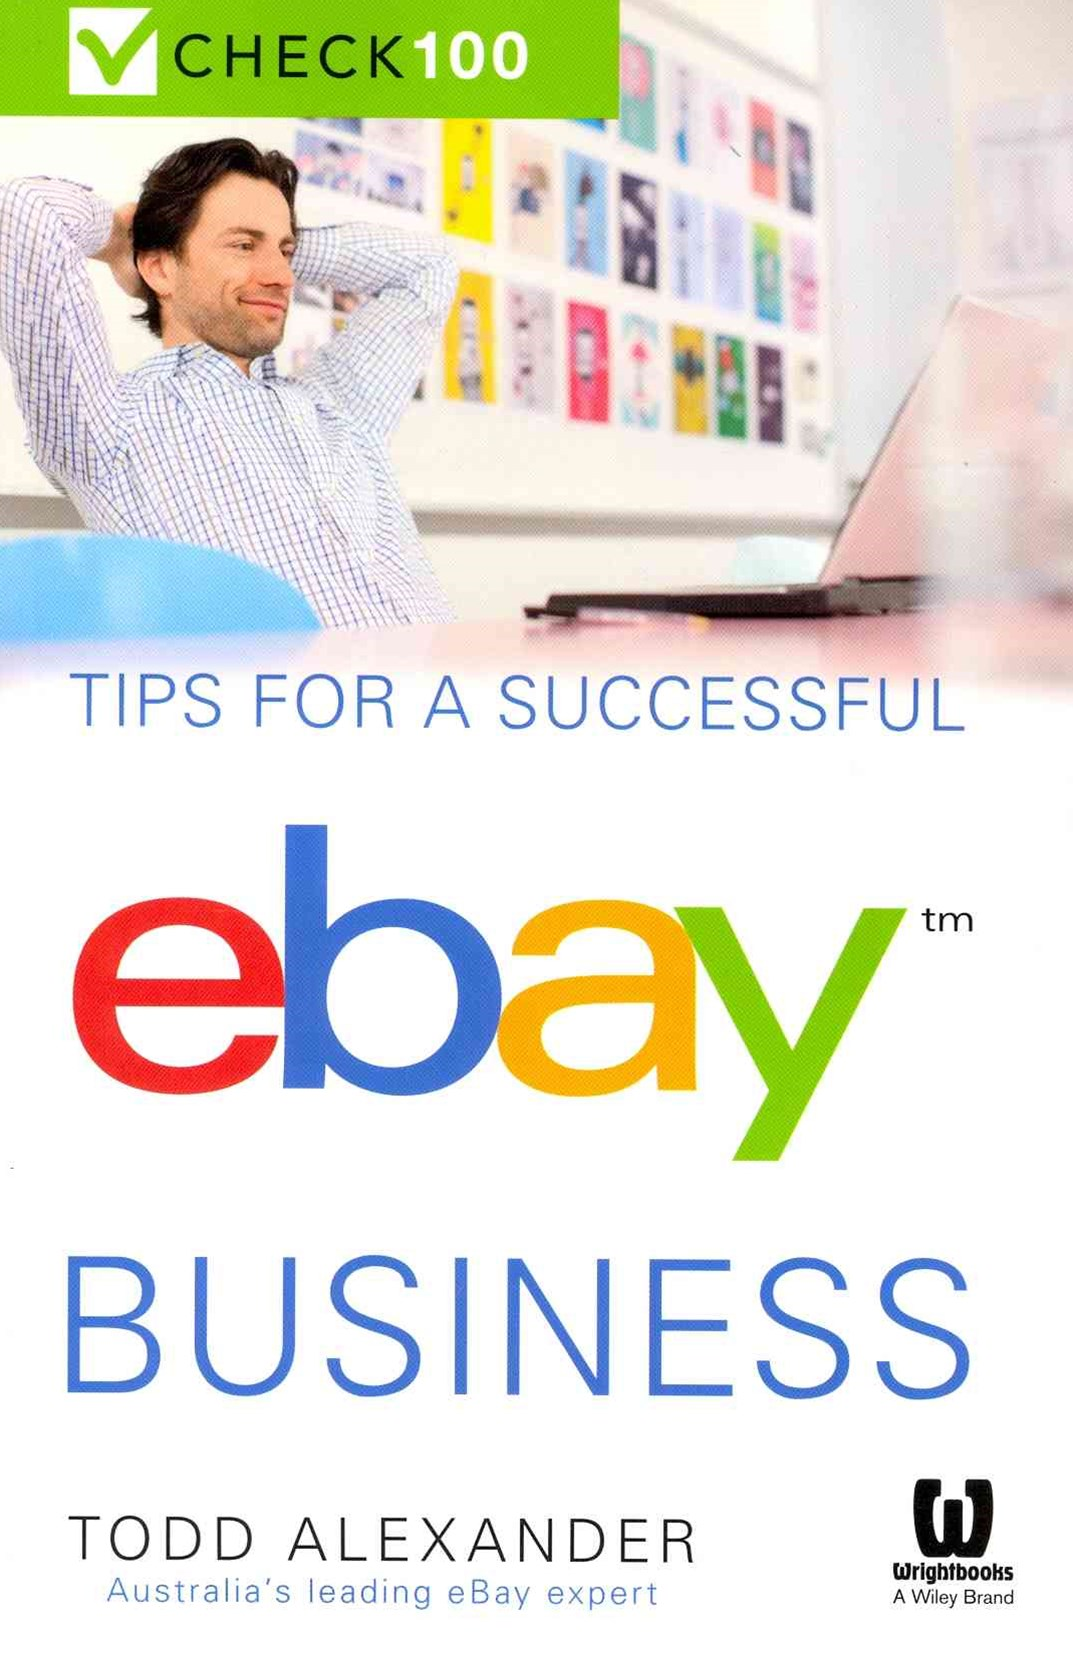 Tips for a Successful eBay Business